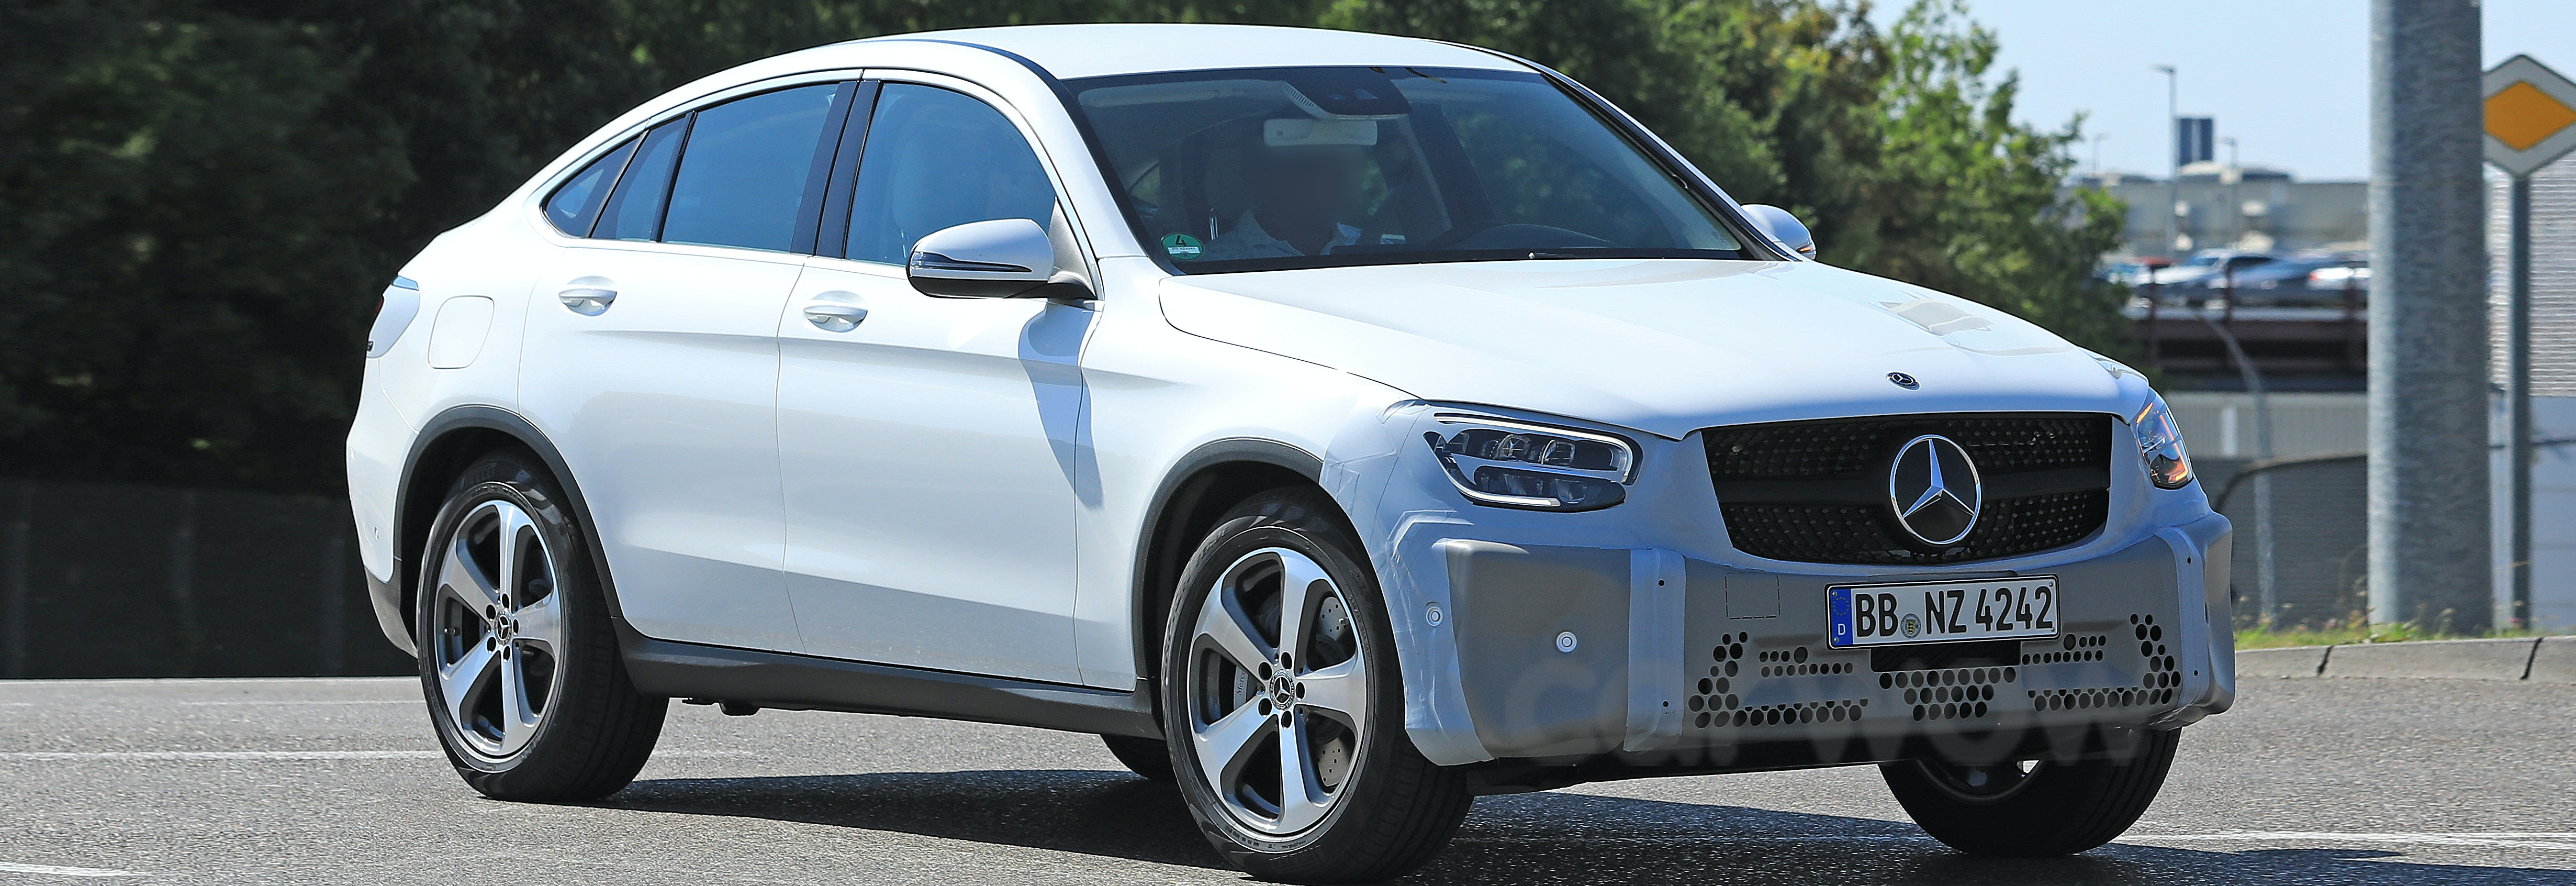 2019 Mercedes Glc Coupe Suv Price Specs And Release Date Carwow